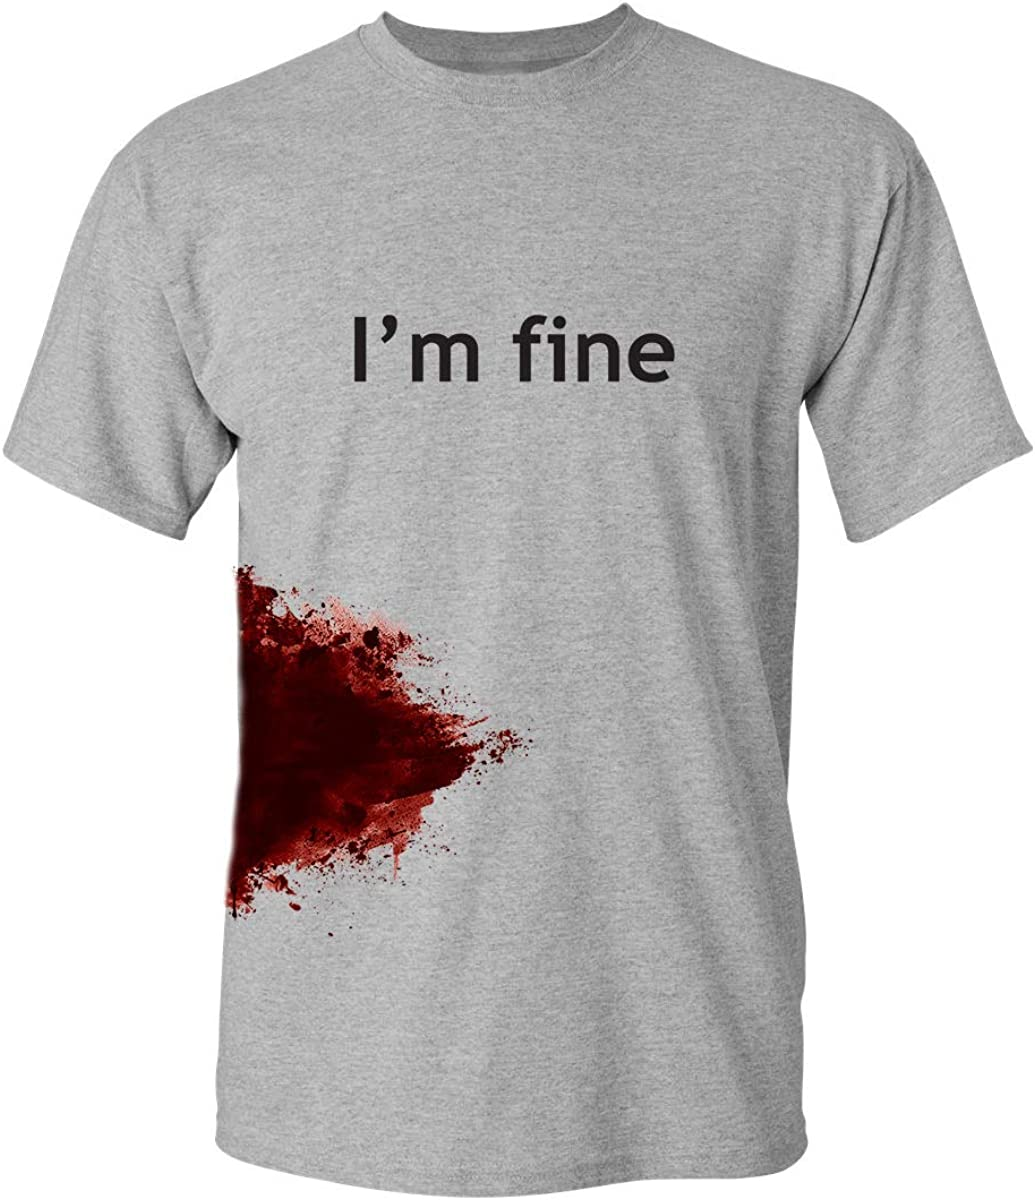 I'm Fine Graphic Novelty Sarcastic Movie Halloween Humor Zombie Funny T Shirt